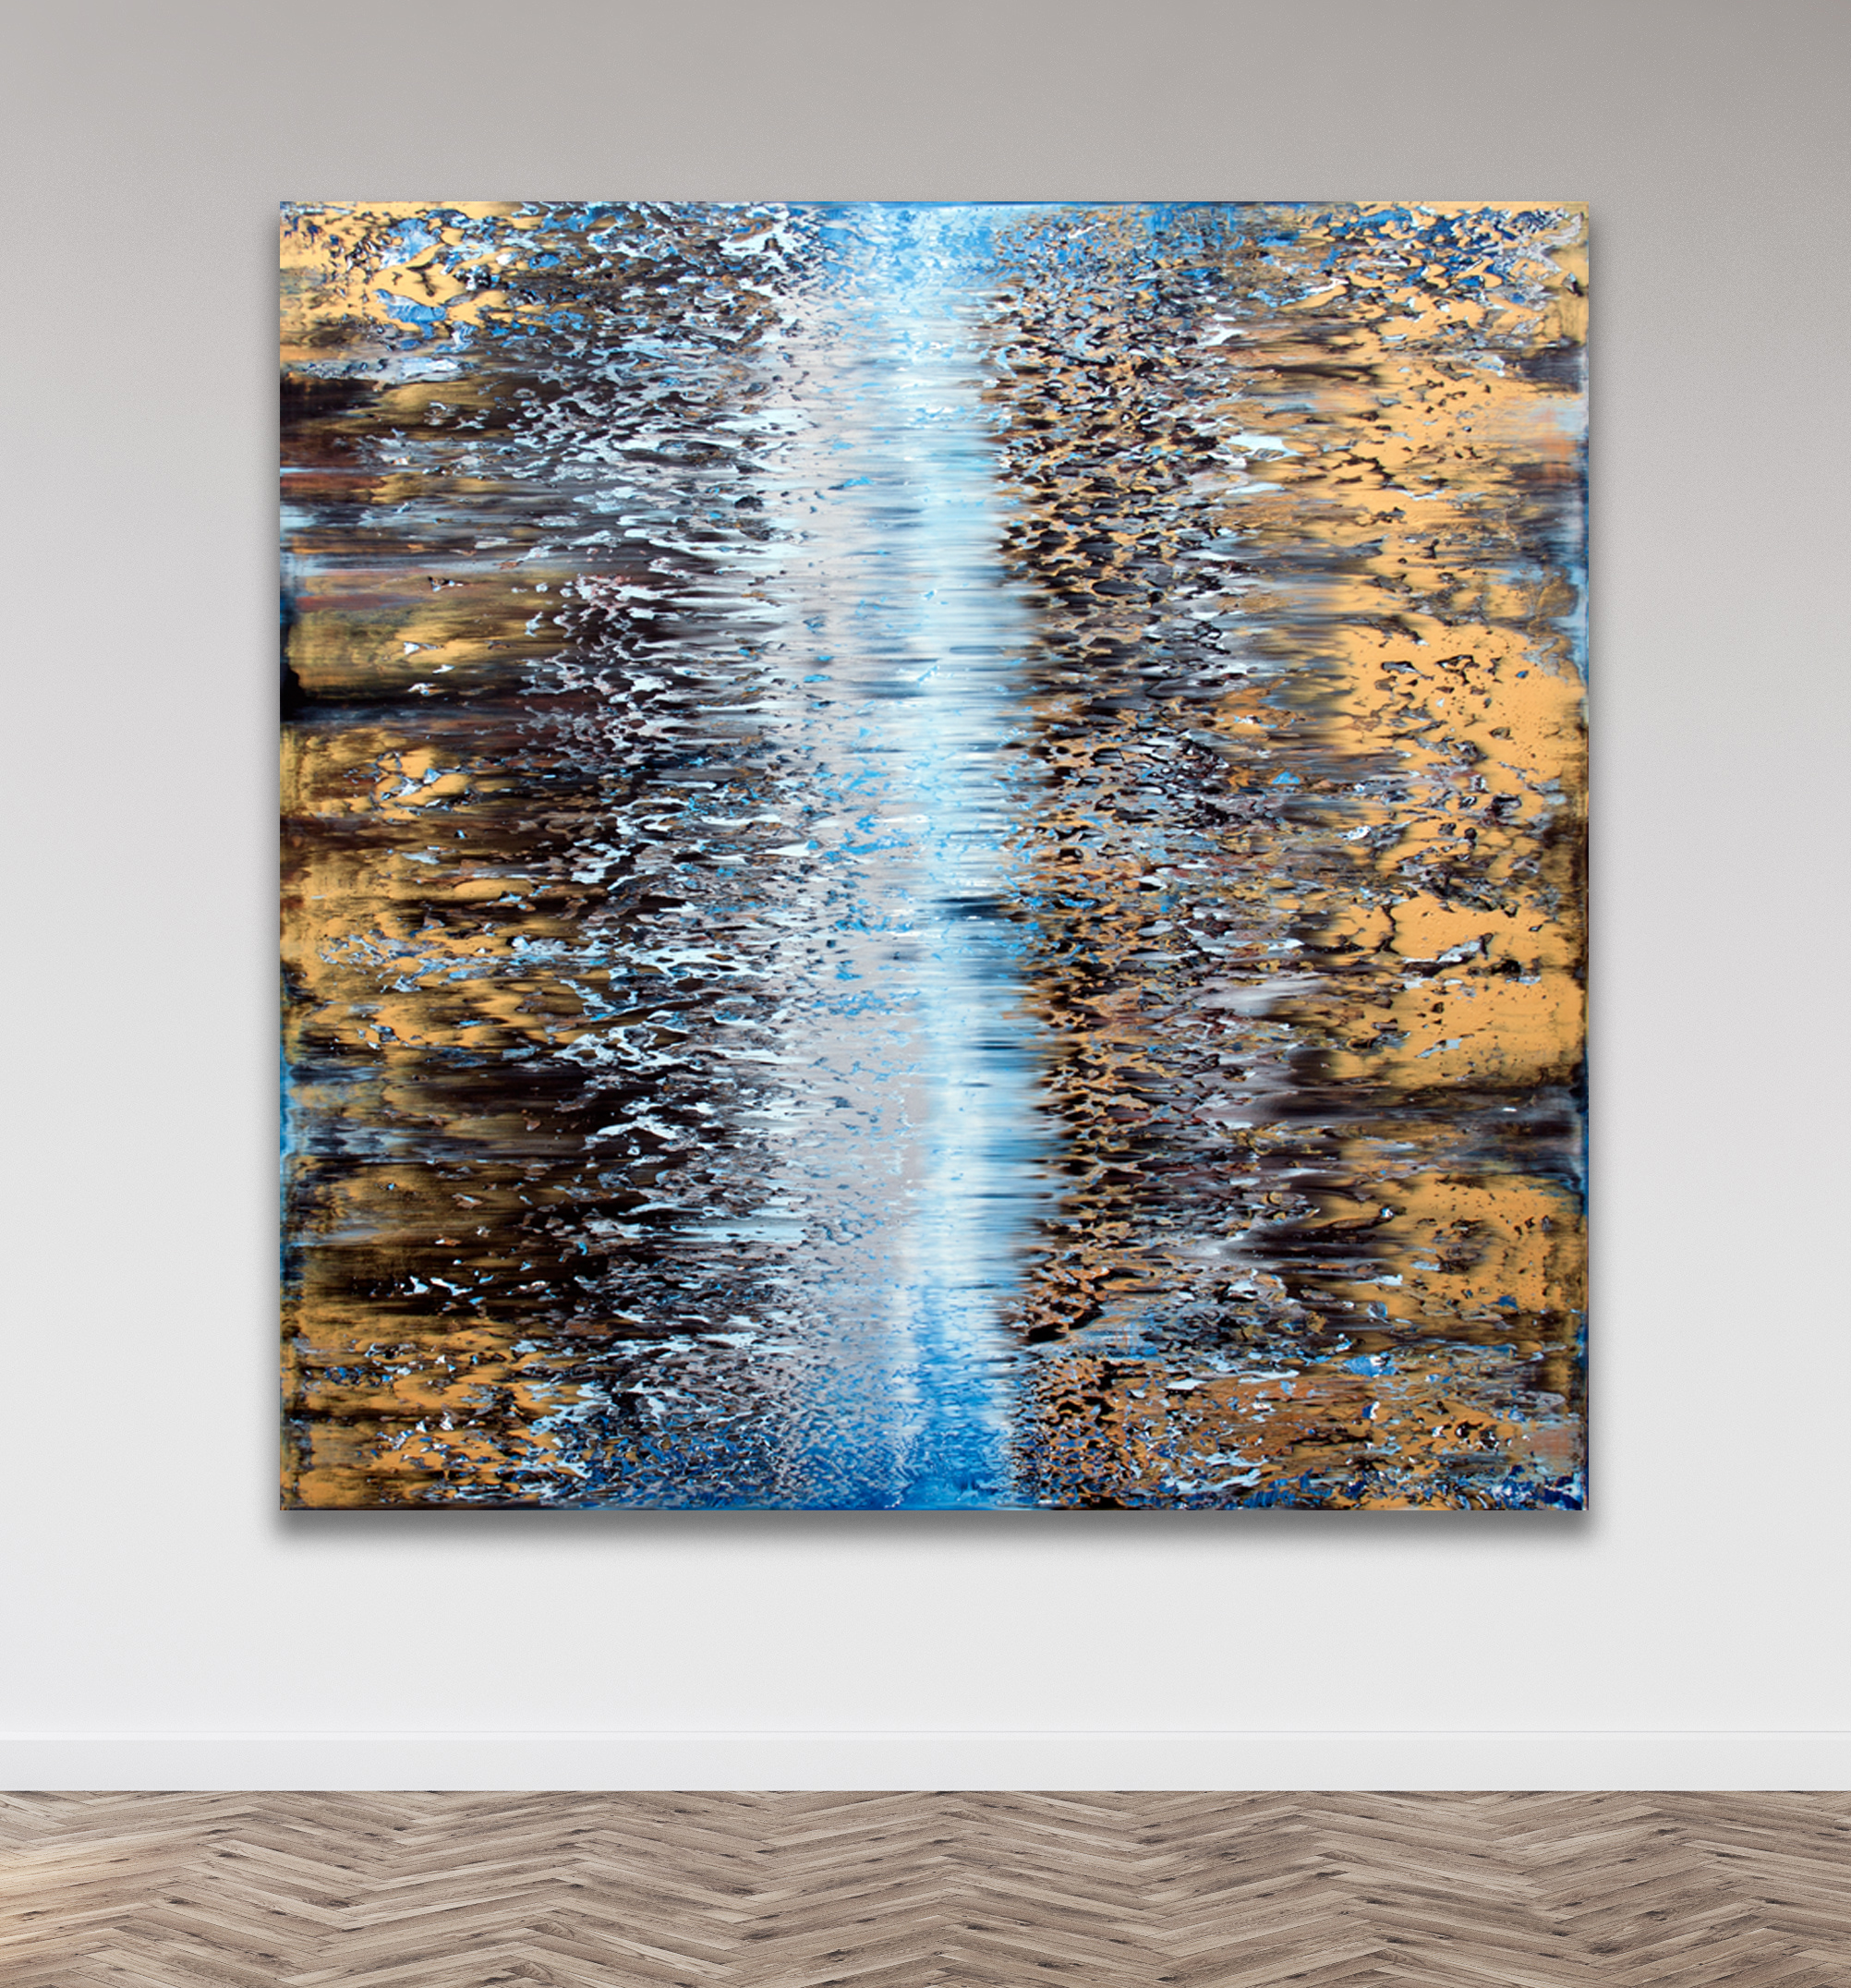 Goldrush  Oil on canvas 150cm x 150cm x 4.6cm © Anthony Wigglesworth - All Rights Reserved  Private collection